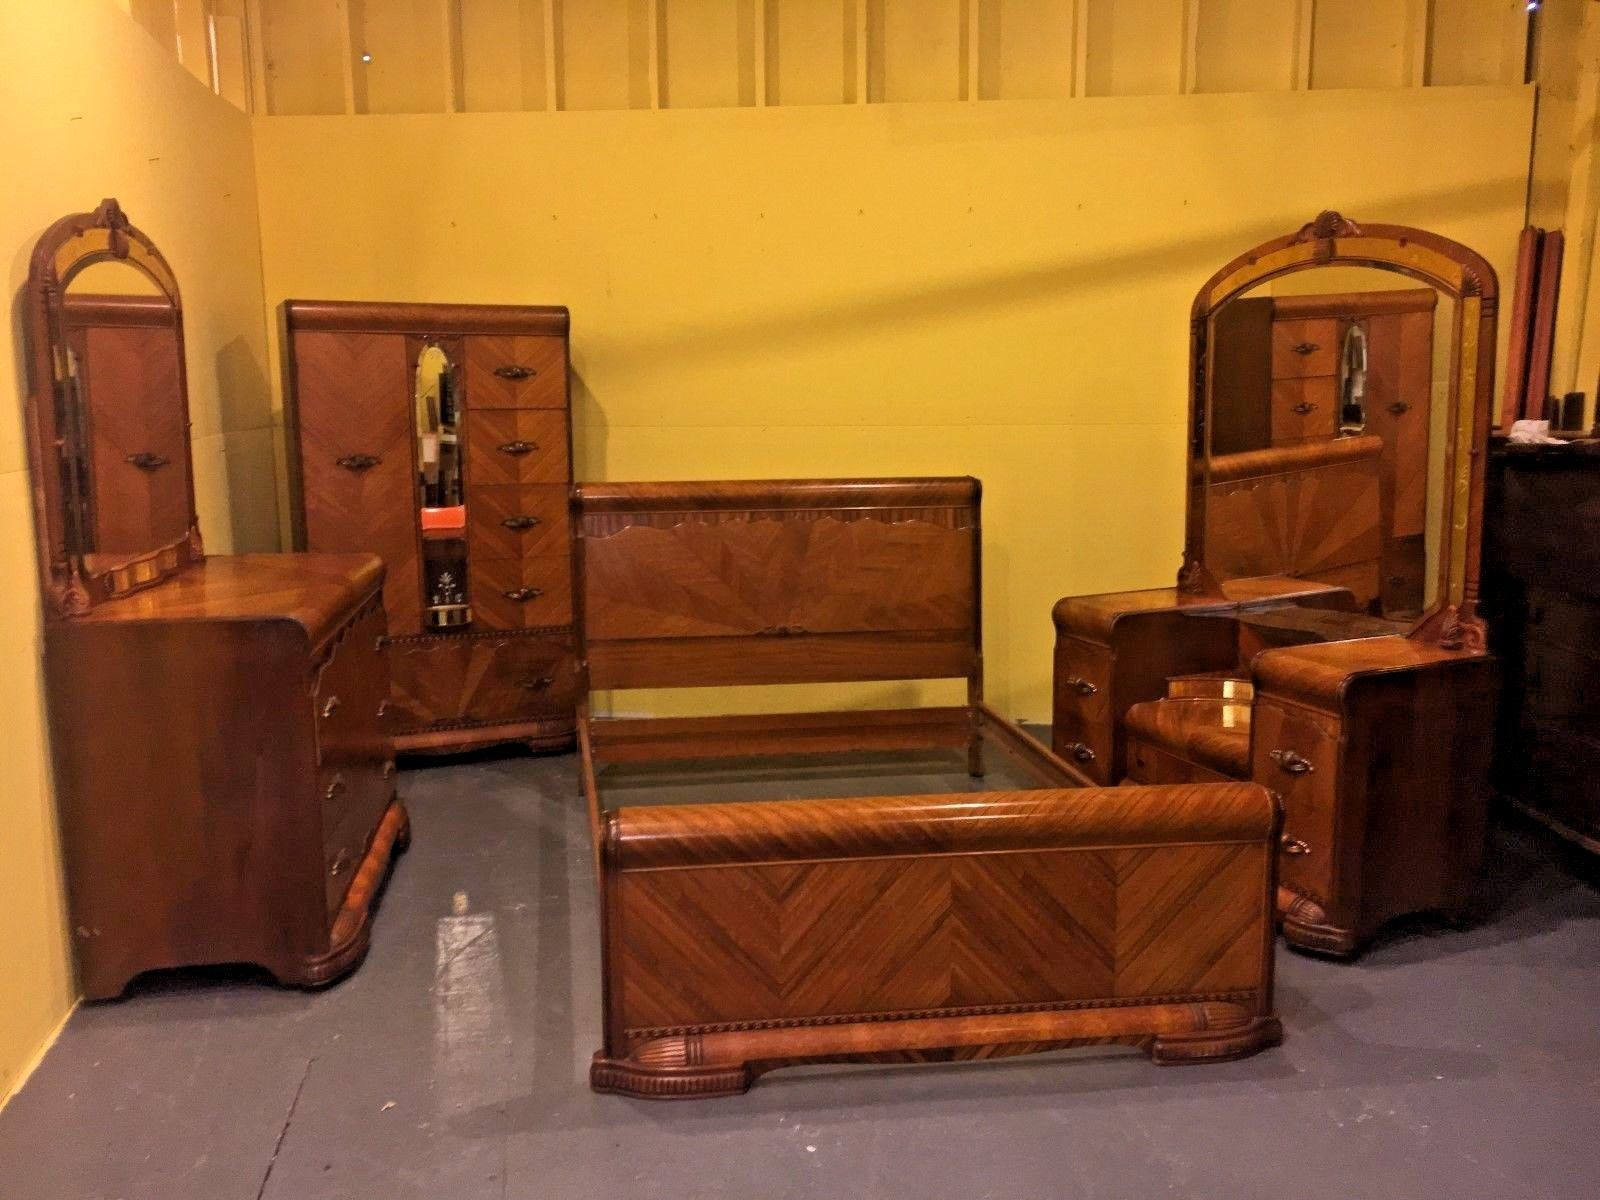 Antique Art Deco Waterfall Bedroom Set Ebay Art Deco Bedroom Furniture Waterfall Art Deco Waterfall Bedroom